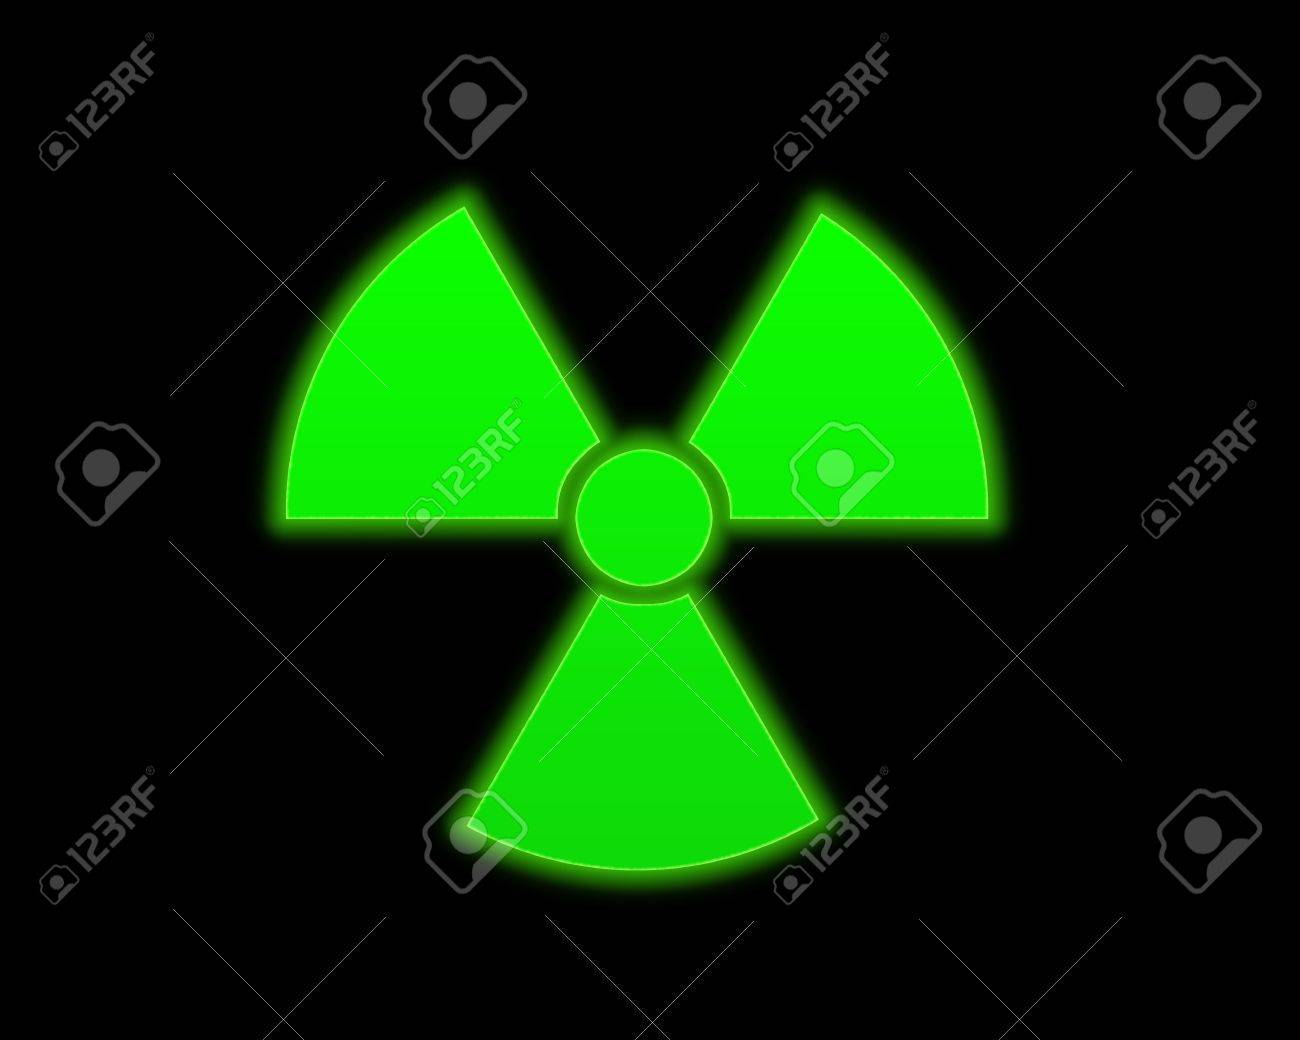 the green radioactive symbol on black background Stock Photo - 2731244